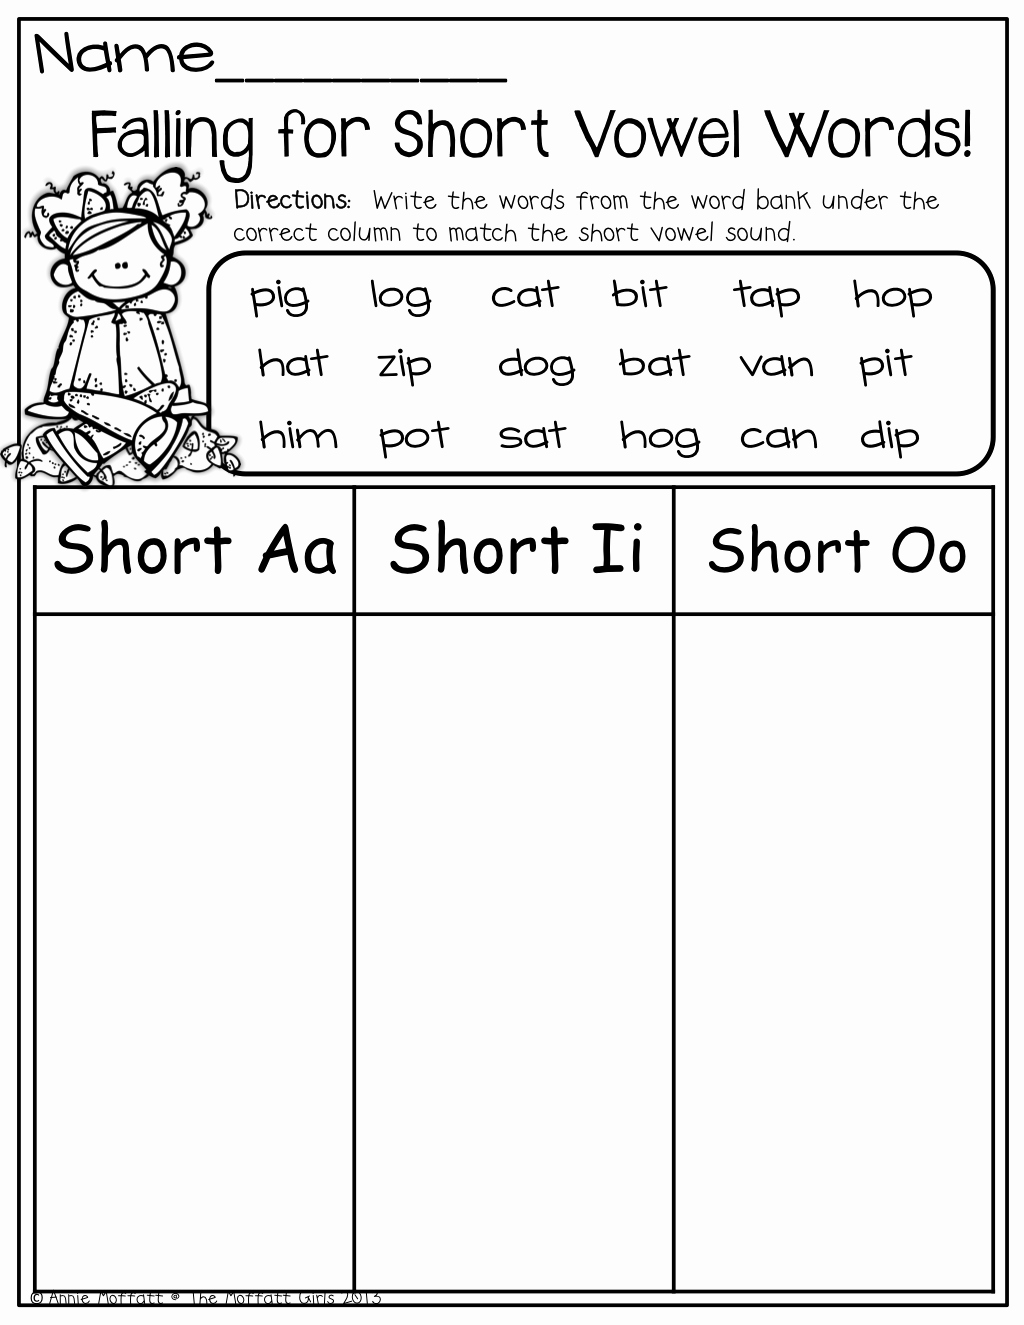 Short and Long Vowel Worksheet Lovely Short Vowel Word sort